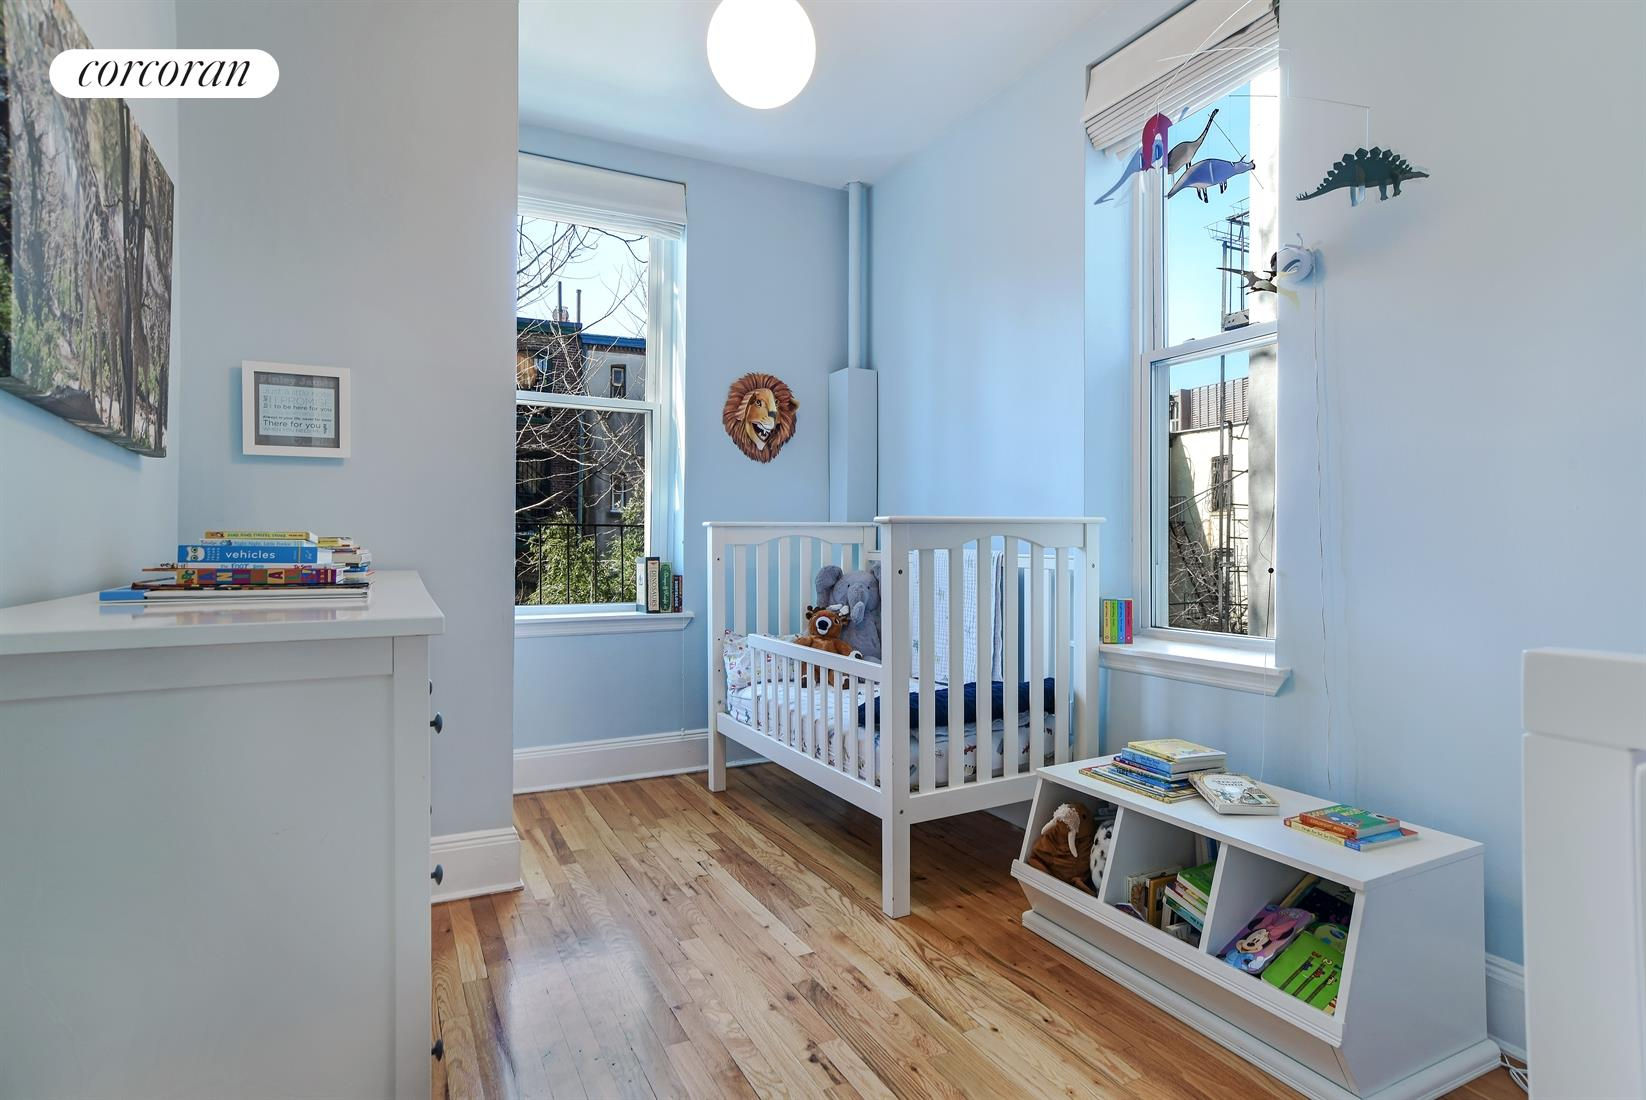 Corcoran, 654 Carroll Street, Apt. 2R, Park Slope Real Estate ...